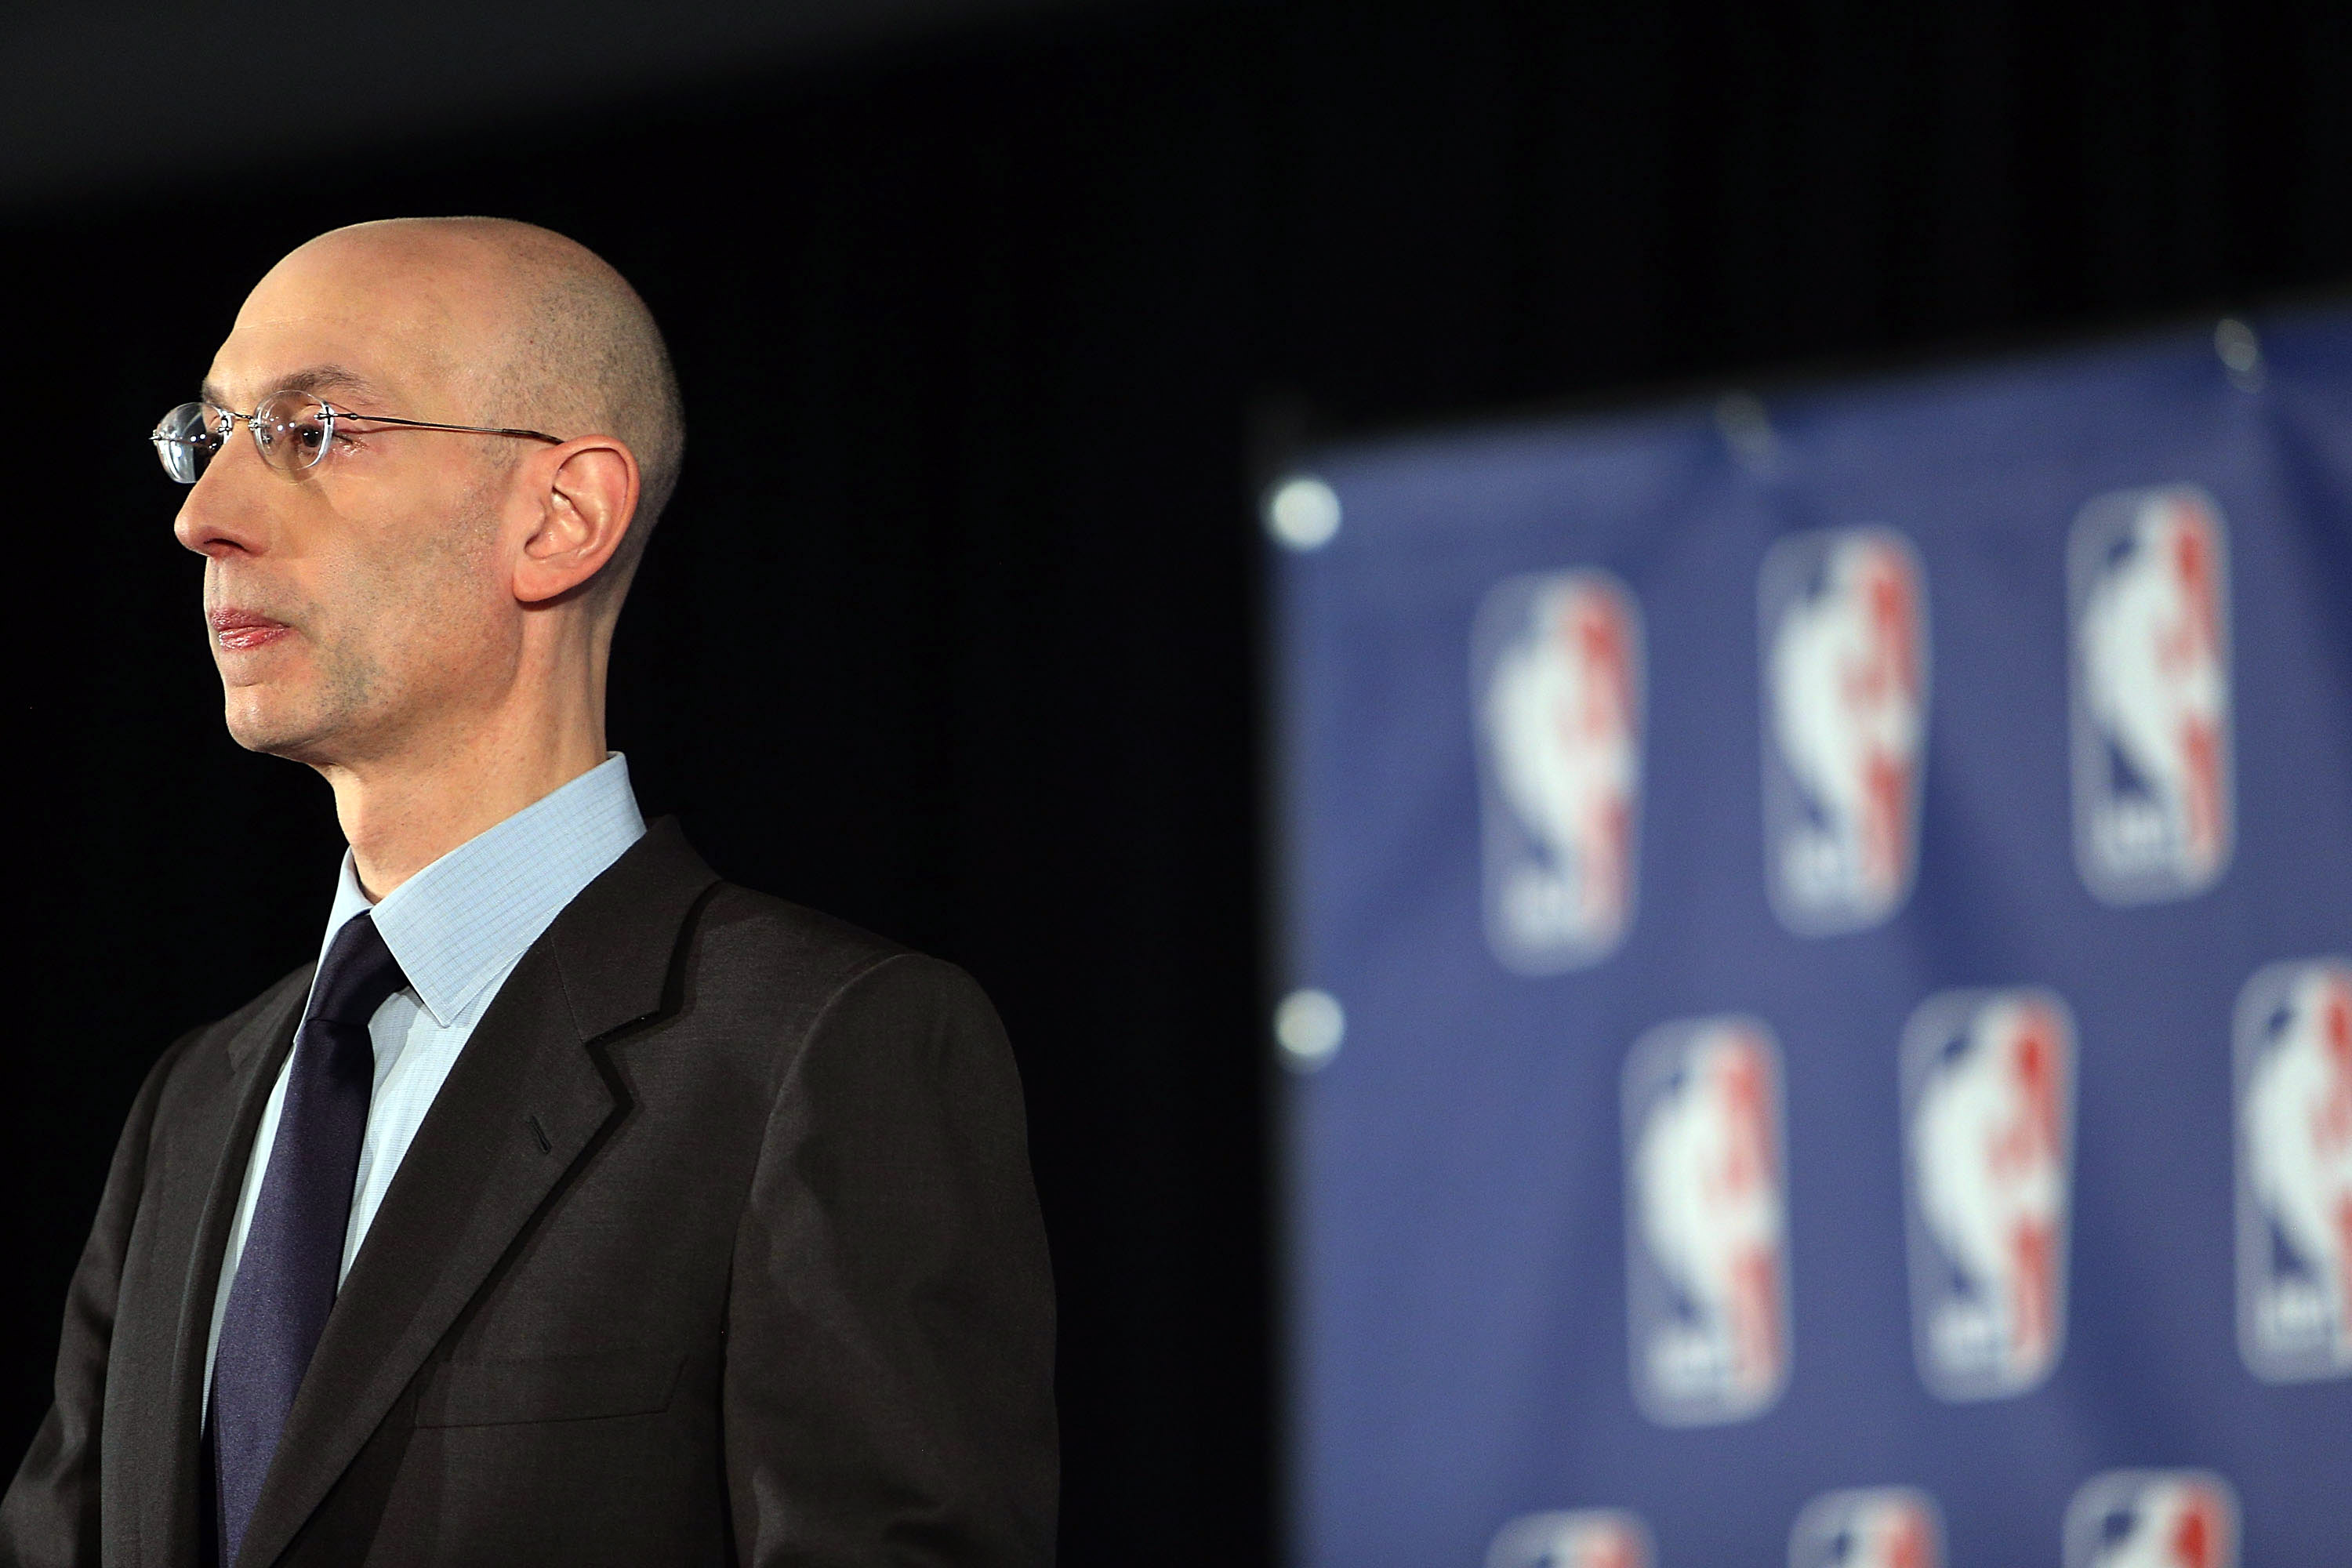 NBA commissioner Adam Silver addresses the media about the investigation involving Los Angeles Clippers owner Donald Sterling in New York City on April 29, 2014